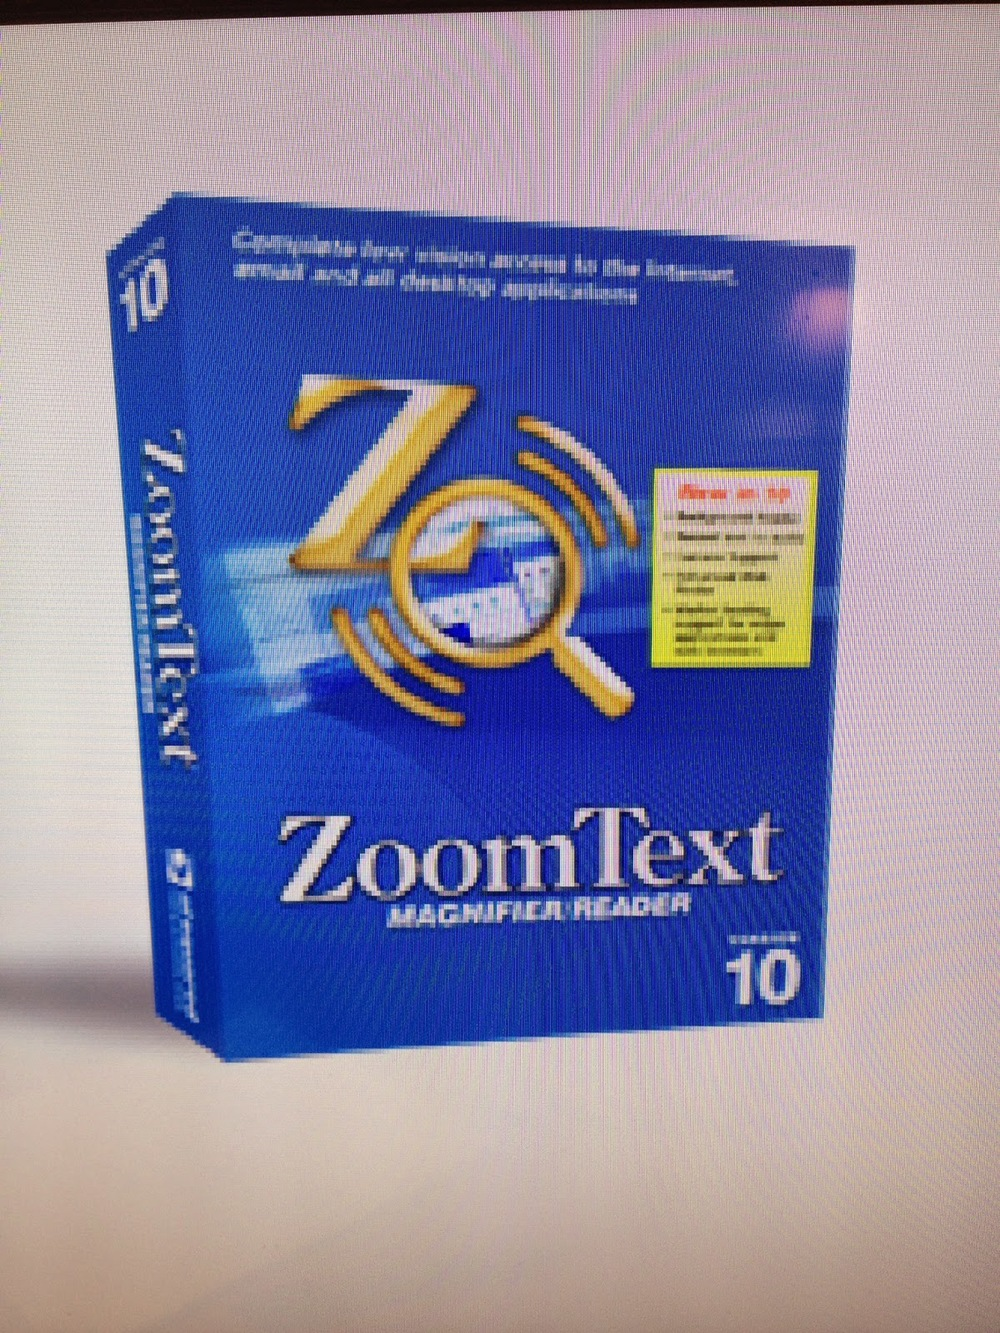 Photo of blue box that says ZoomText